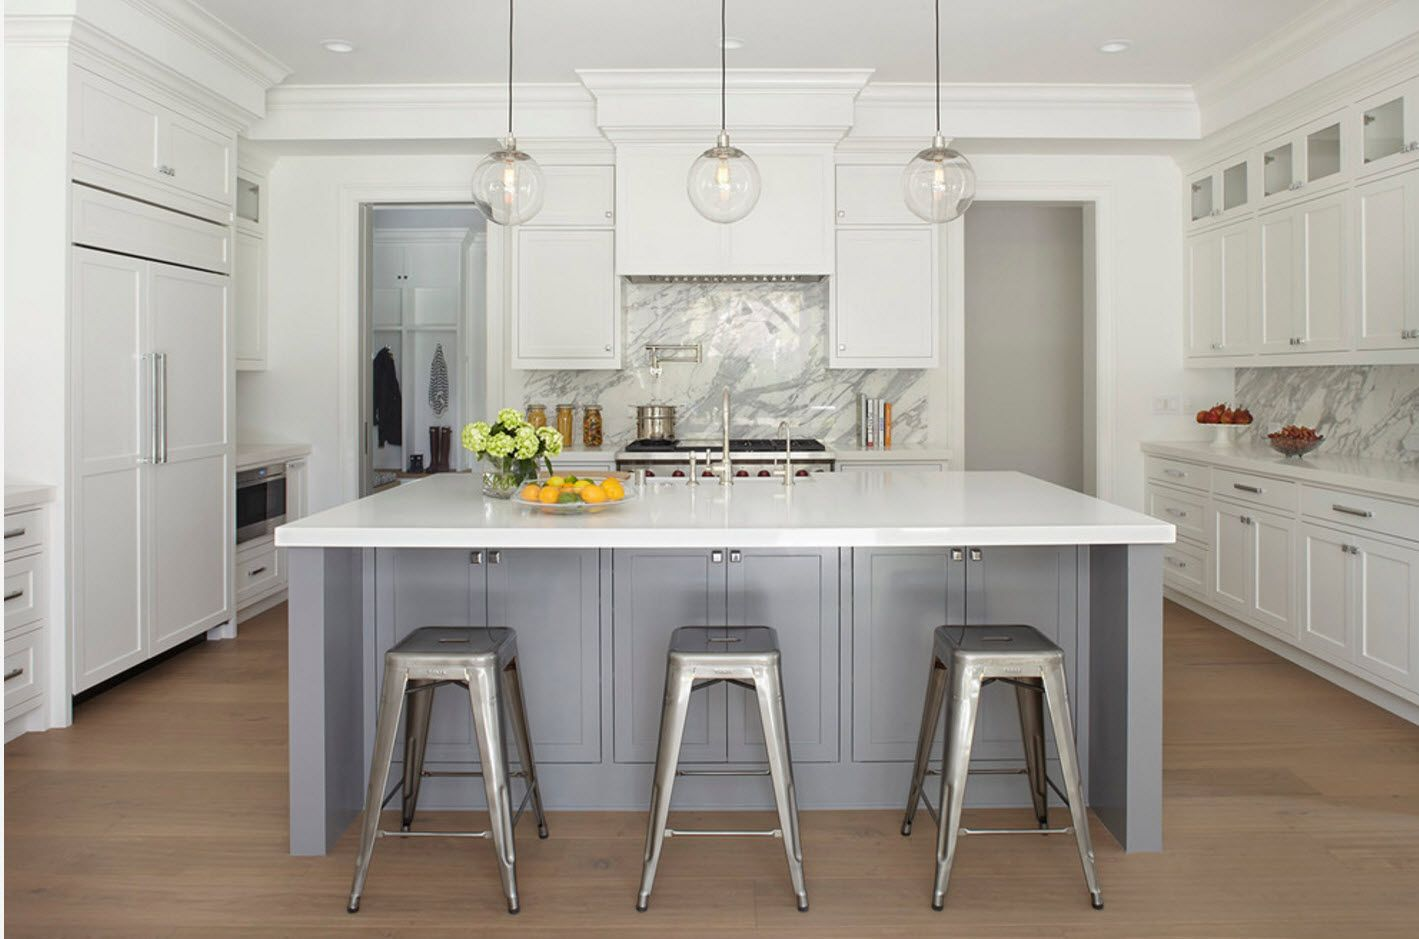 White and gray palette for modern kitchen